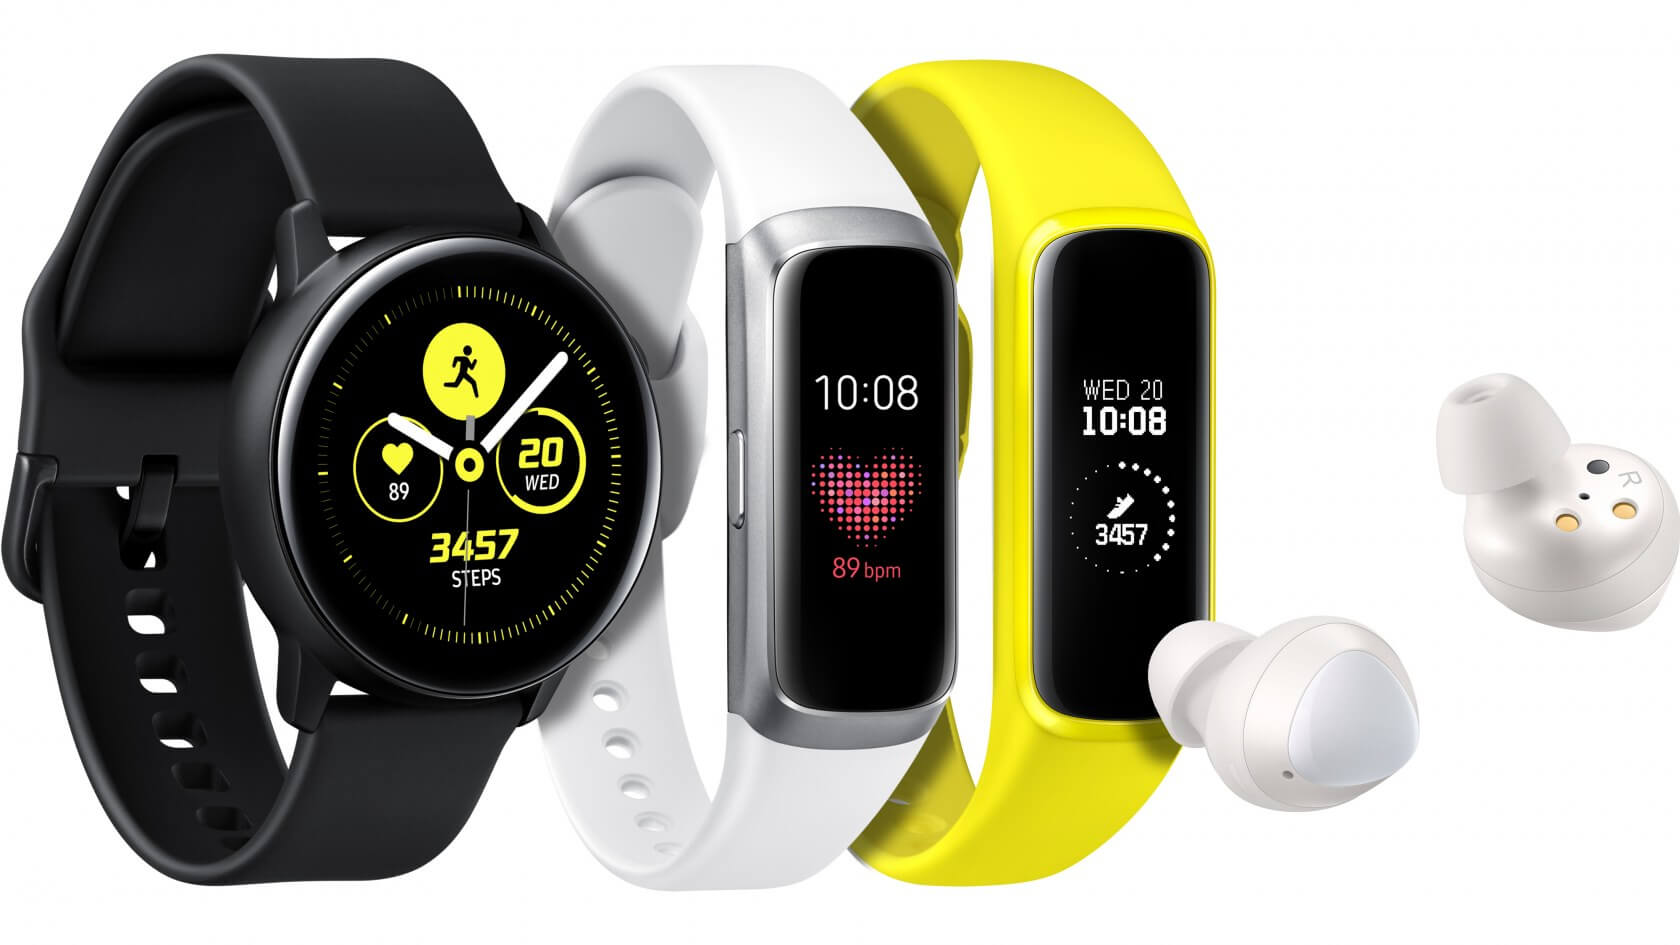 Samsung unveils the Galaxy Buds, the Galaxy Watch Active, and the Galaxy Fit